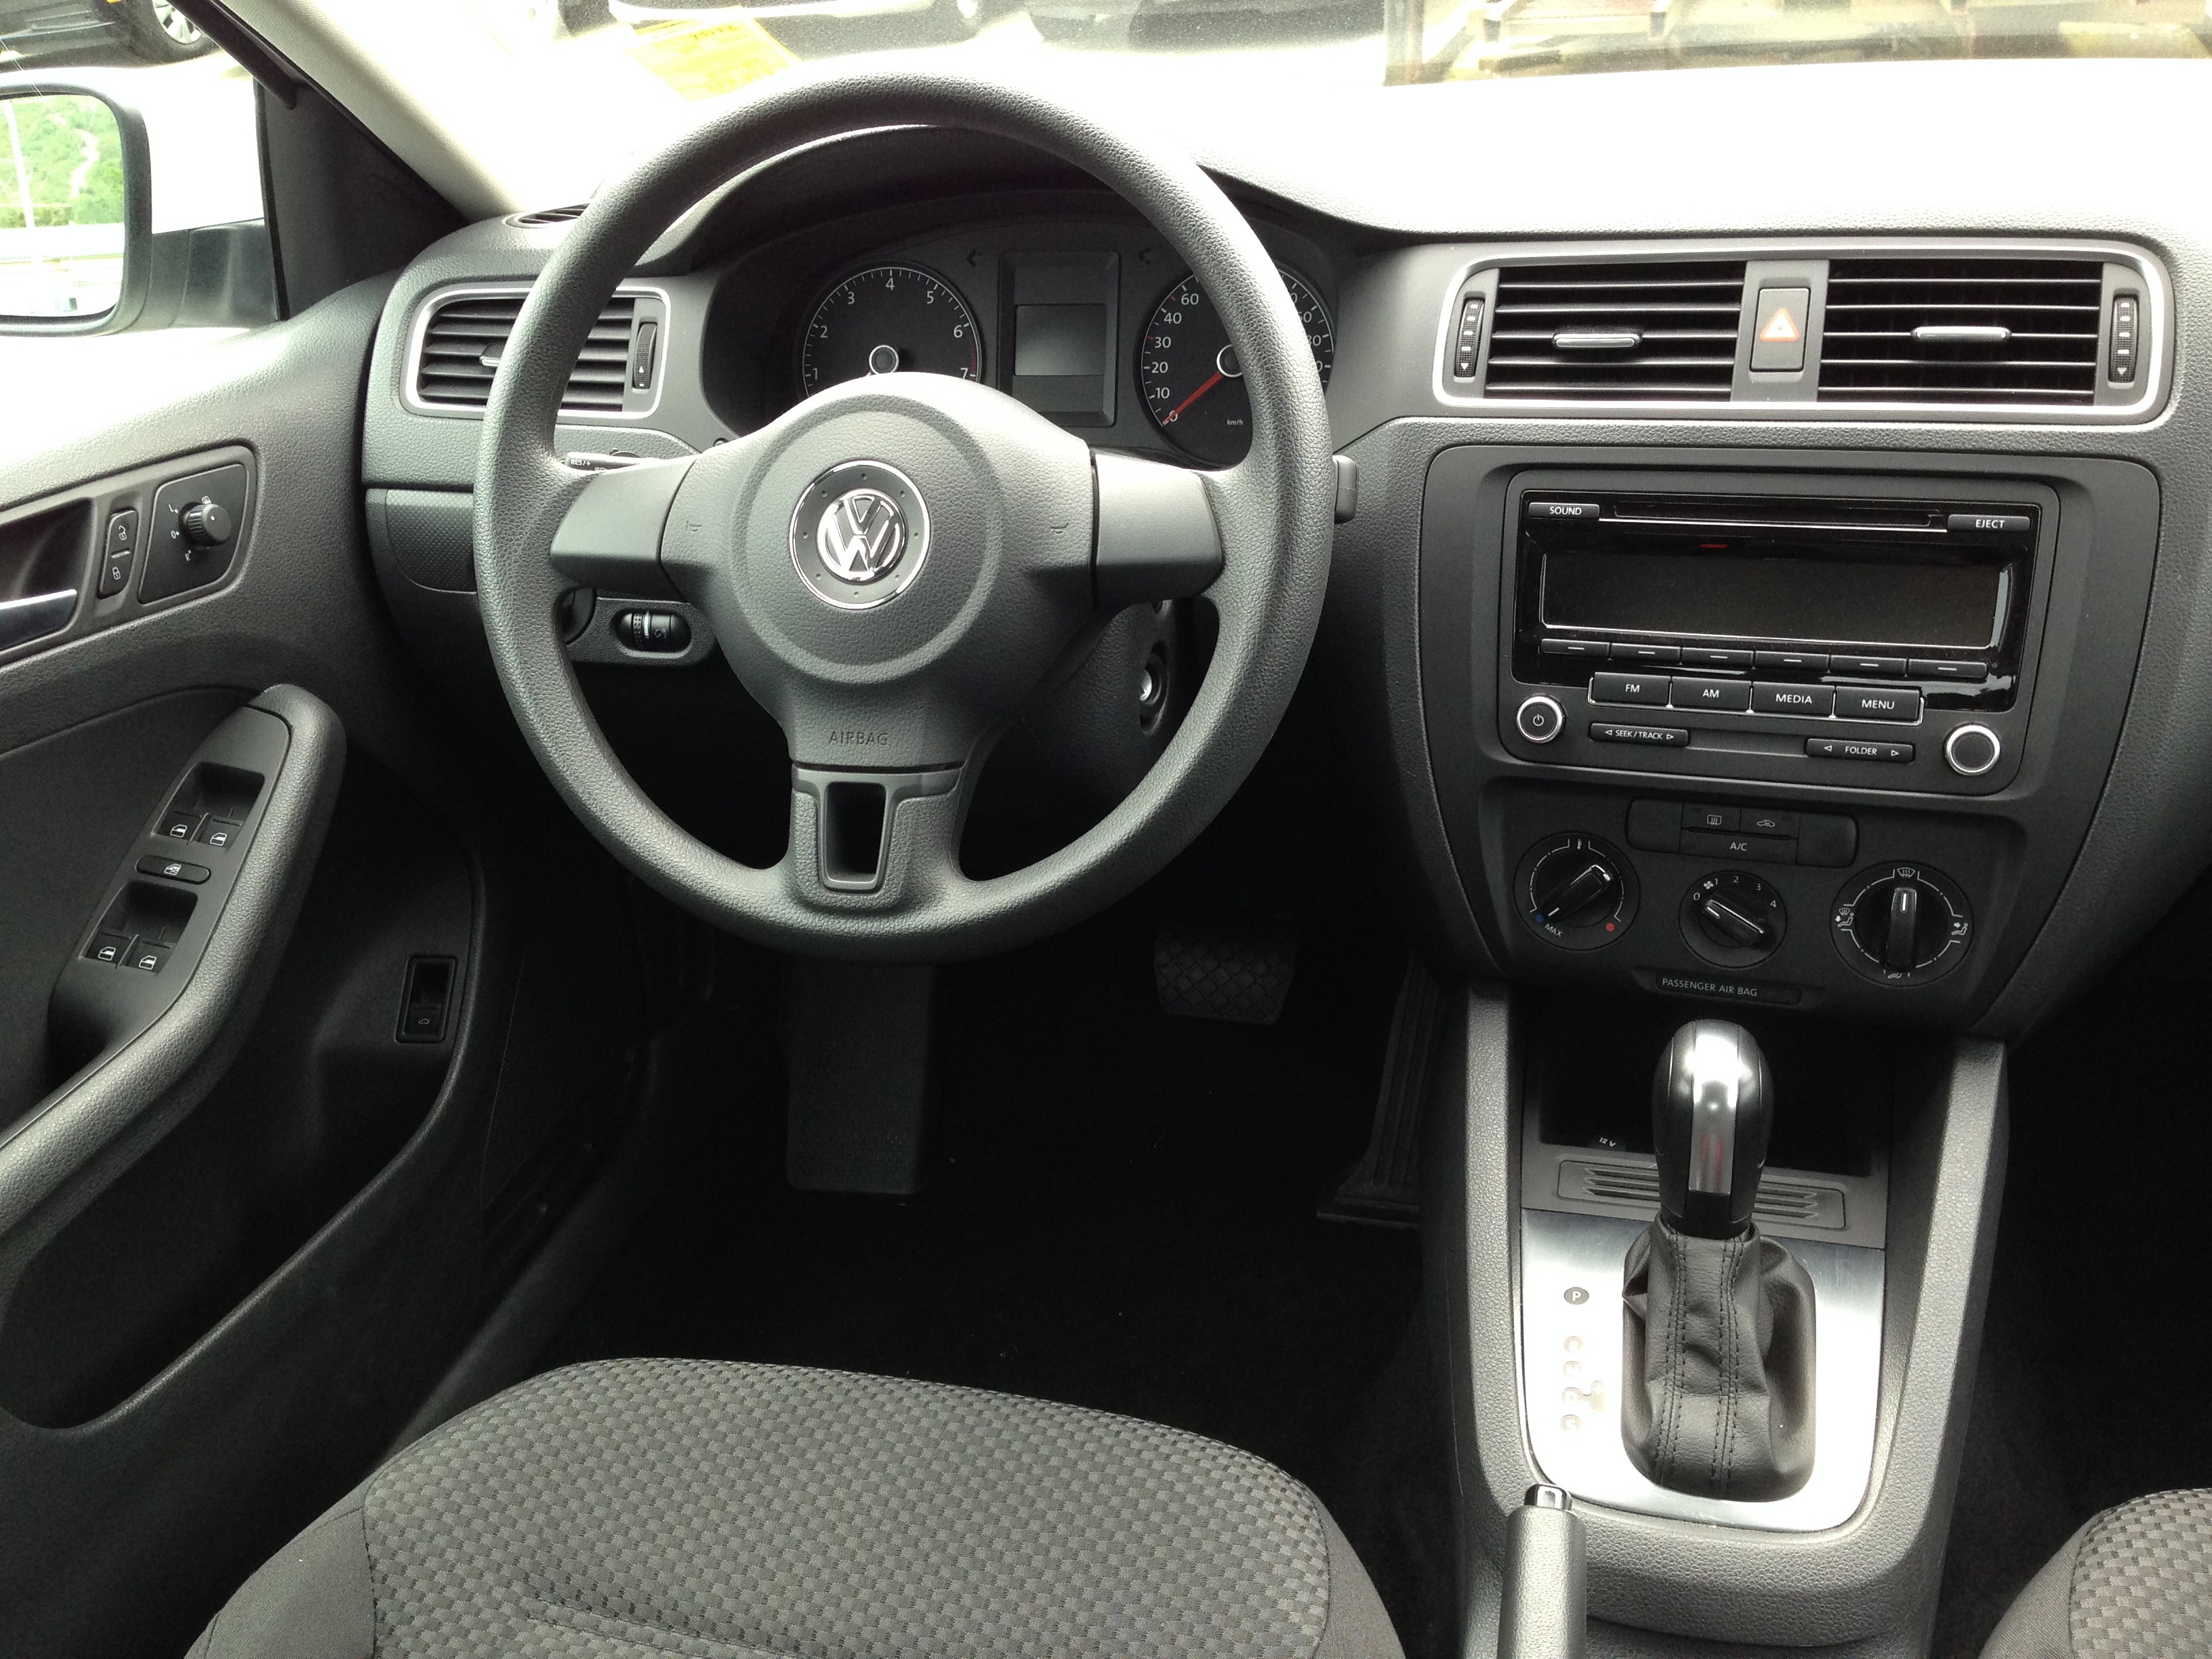 Interior of the VW Jetta